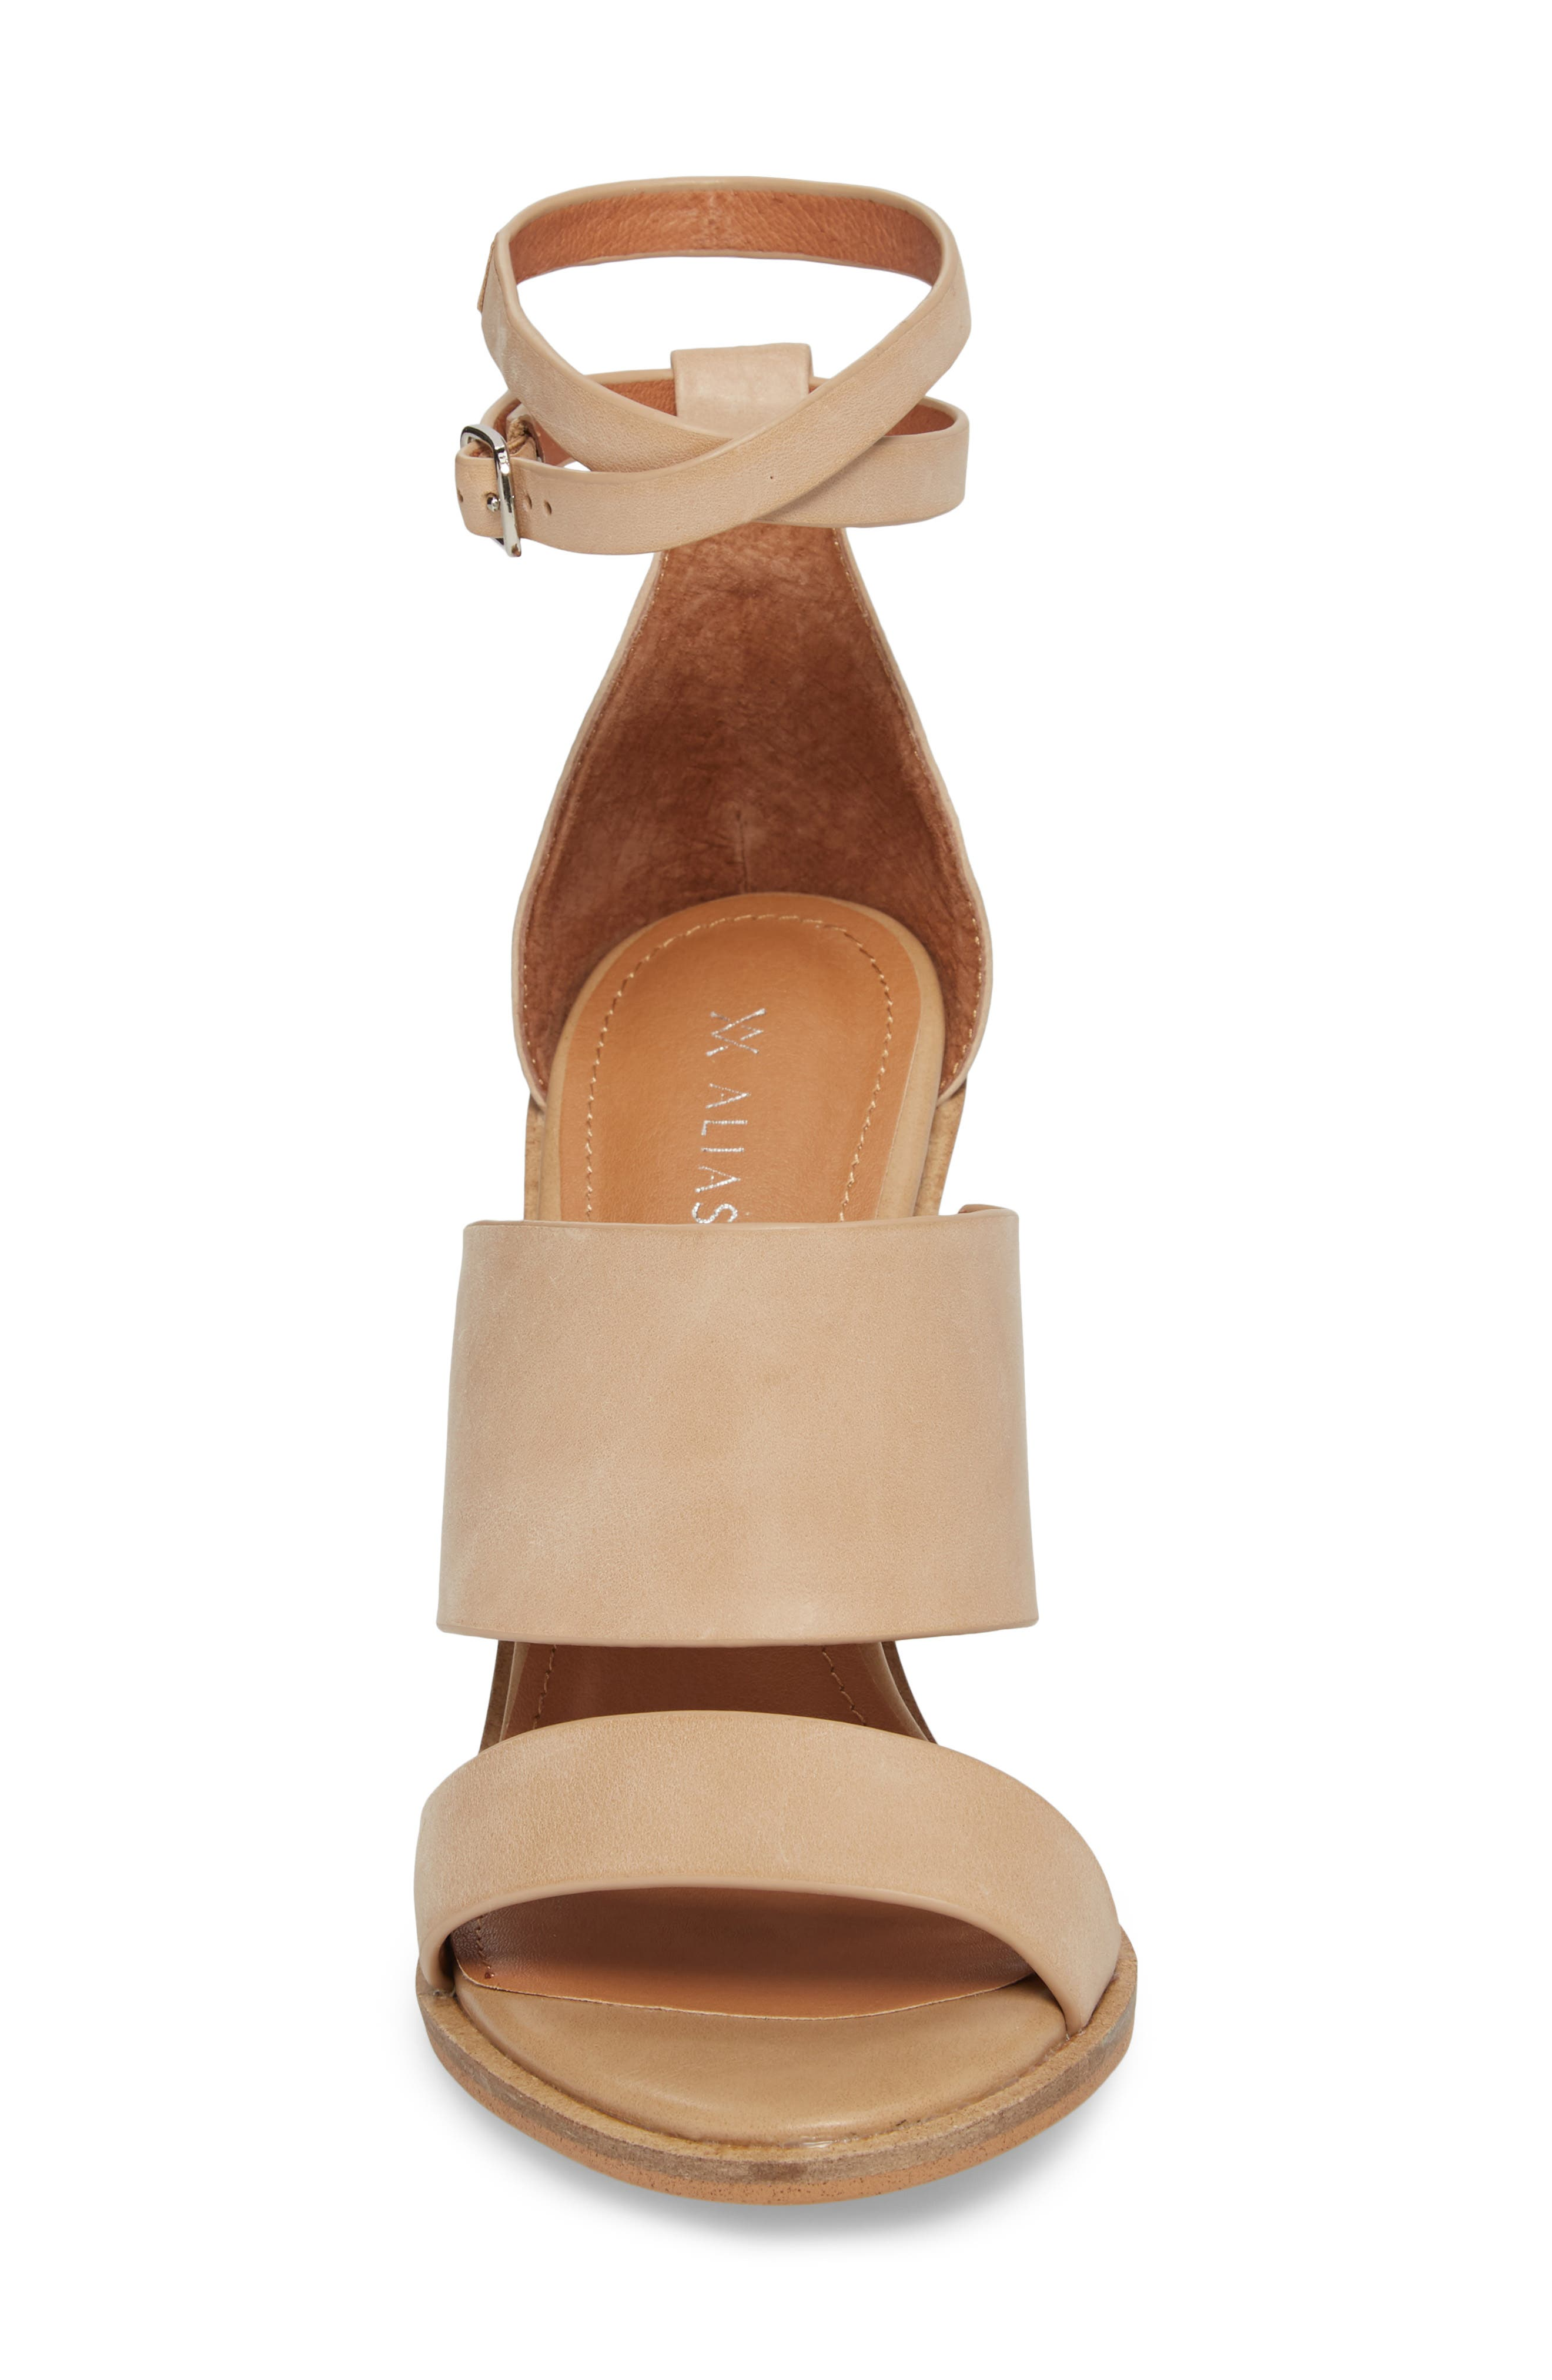 Admiral Ankle Wrap Sandal,                             Alternate thumbnail 4, color,                             Natural Leather